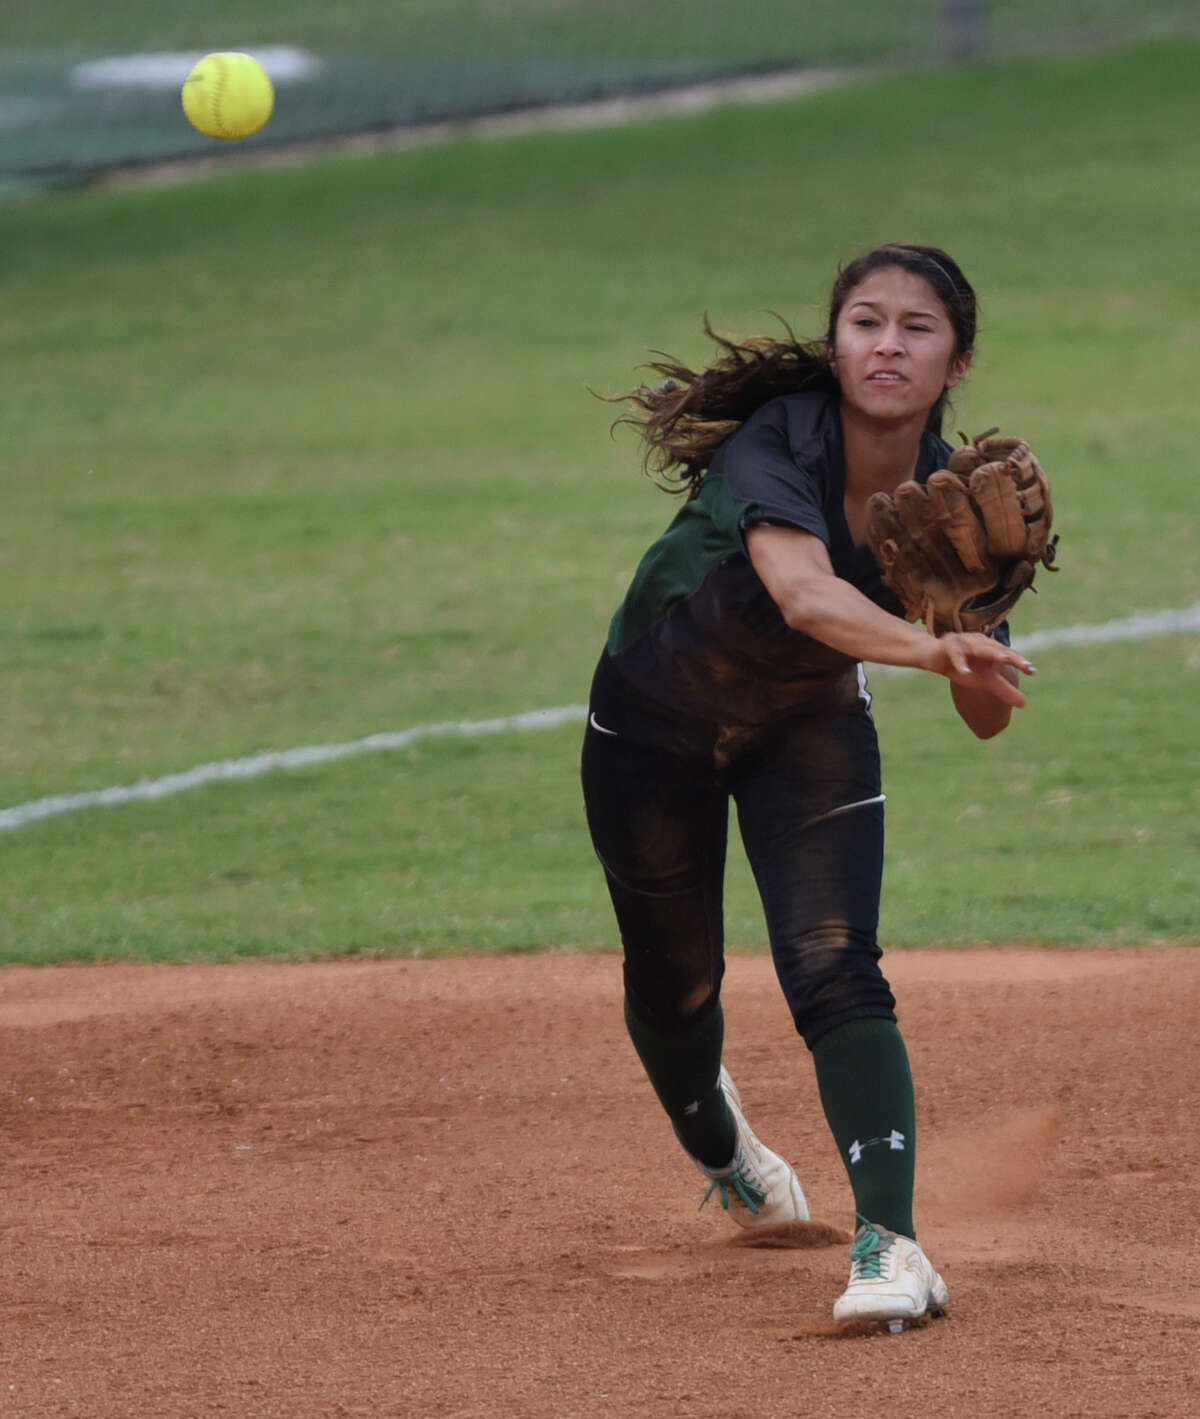 Kristal Salinas of Southwest throws to first to double out a Johnson runner after she speared a line drive during game 1 of the Class 6A second-round high school softball series between Johnson and Southwest at the SAISD complex Thursday, May 7, 2015.